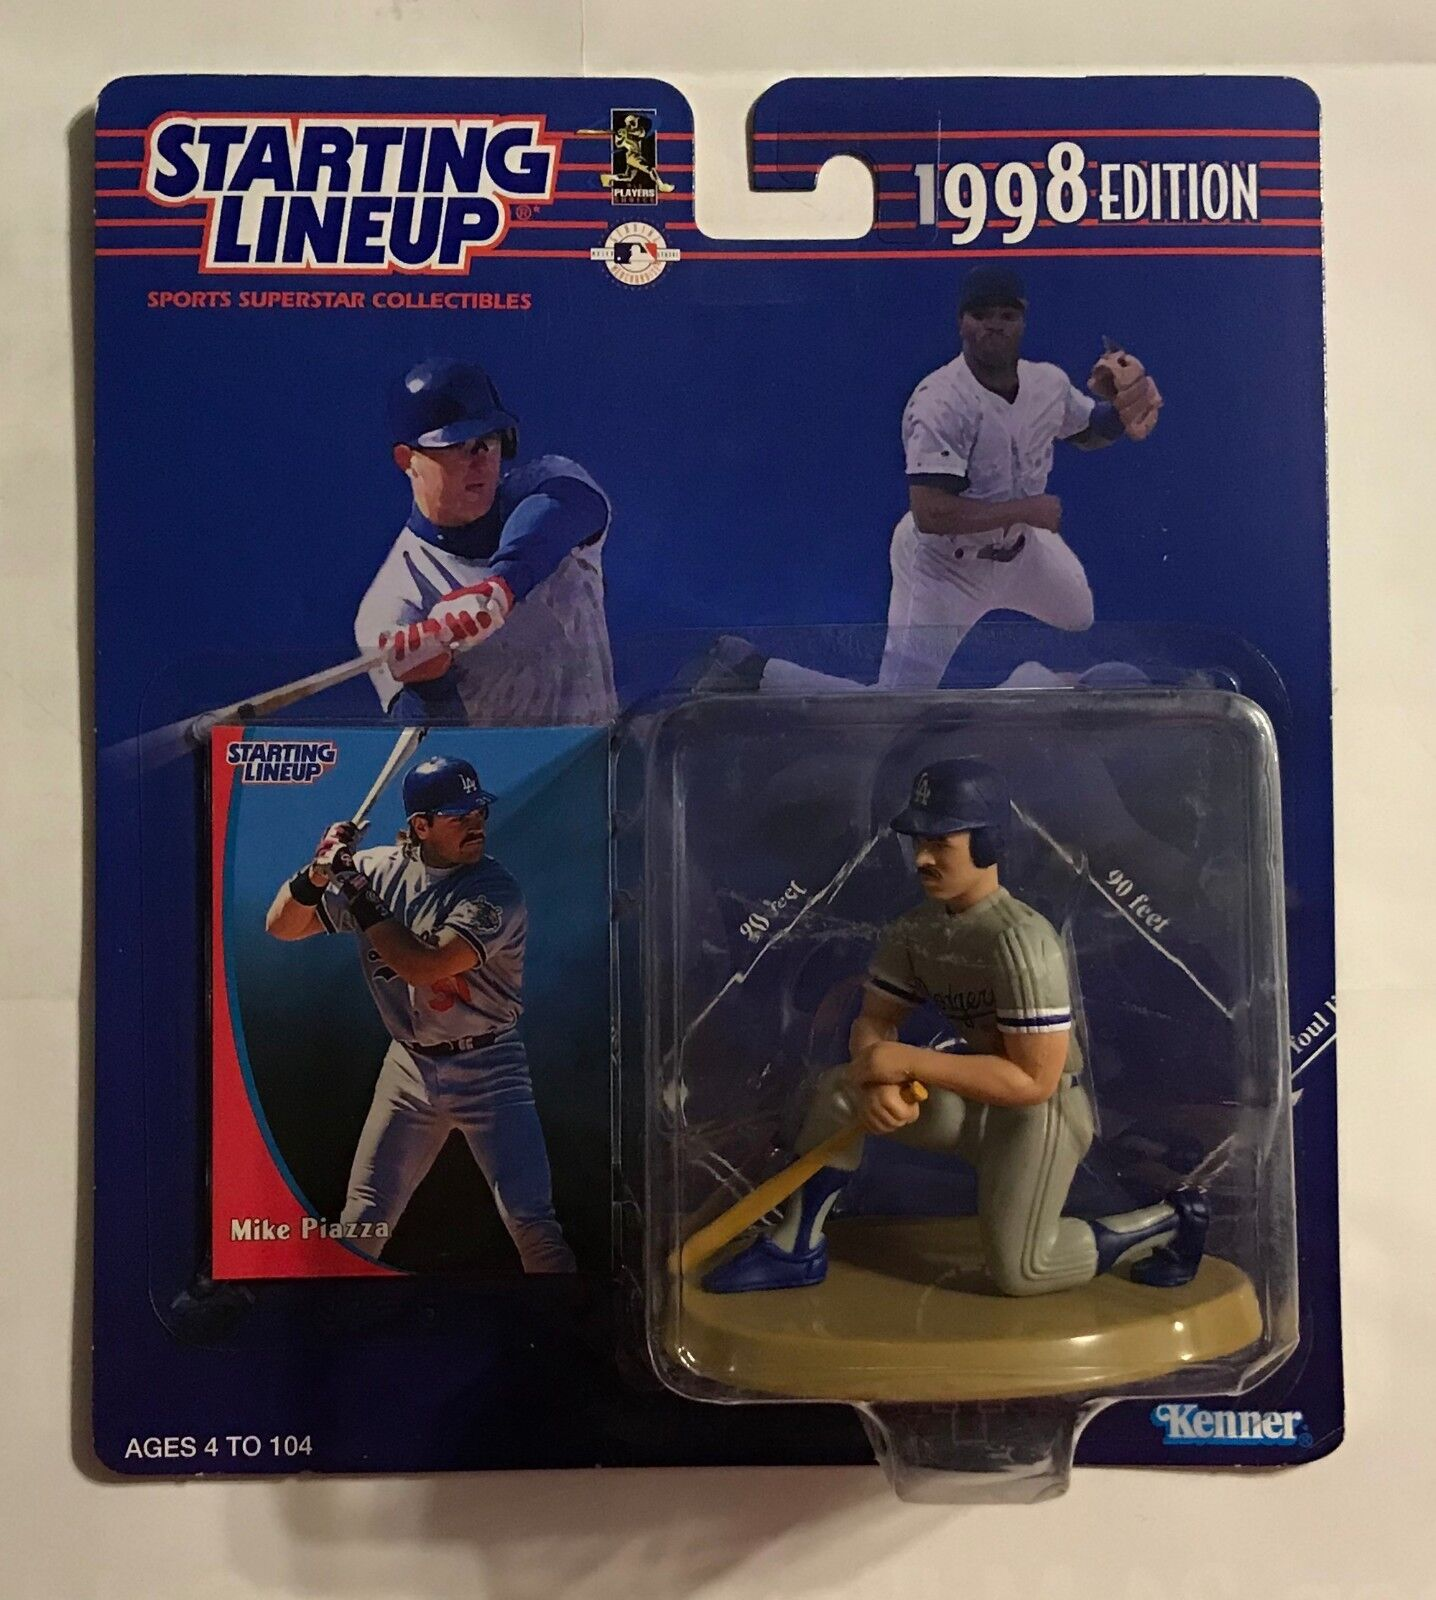 1998 STARTING LINEUP - MIKE PIAZZA - DODGERS - ACTION FIGURE